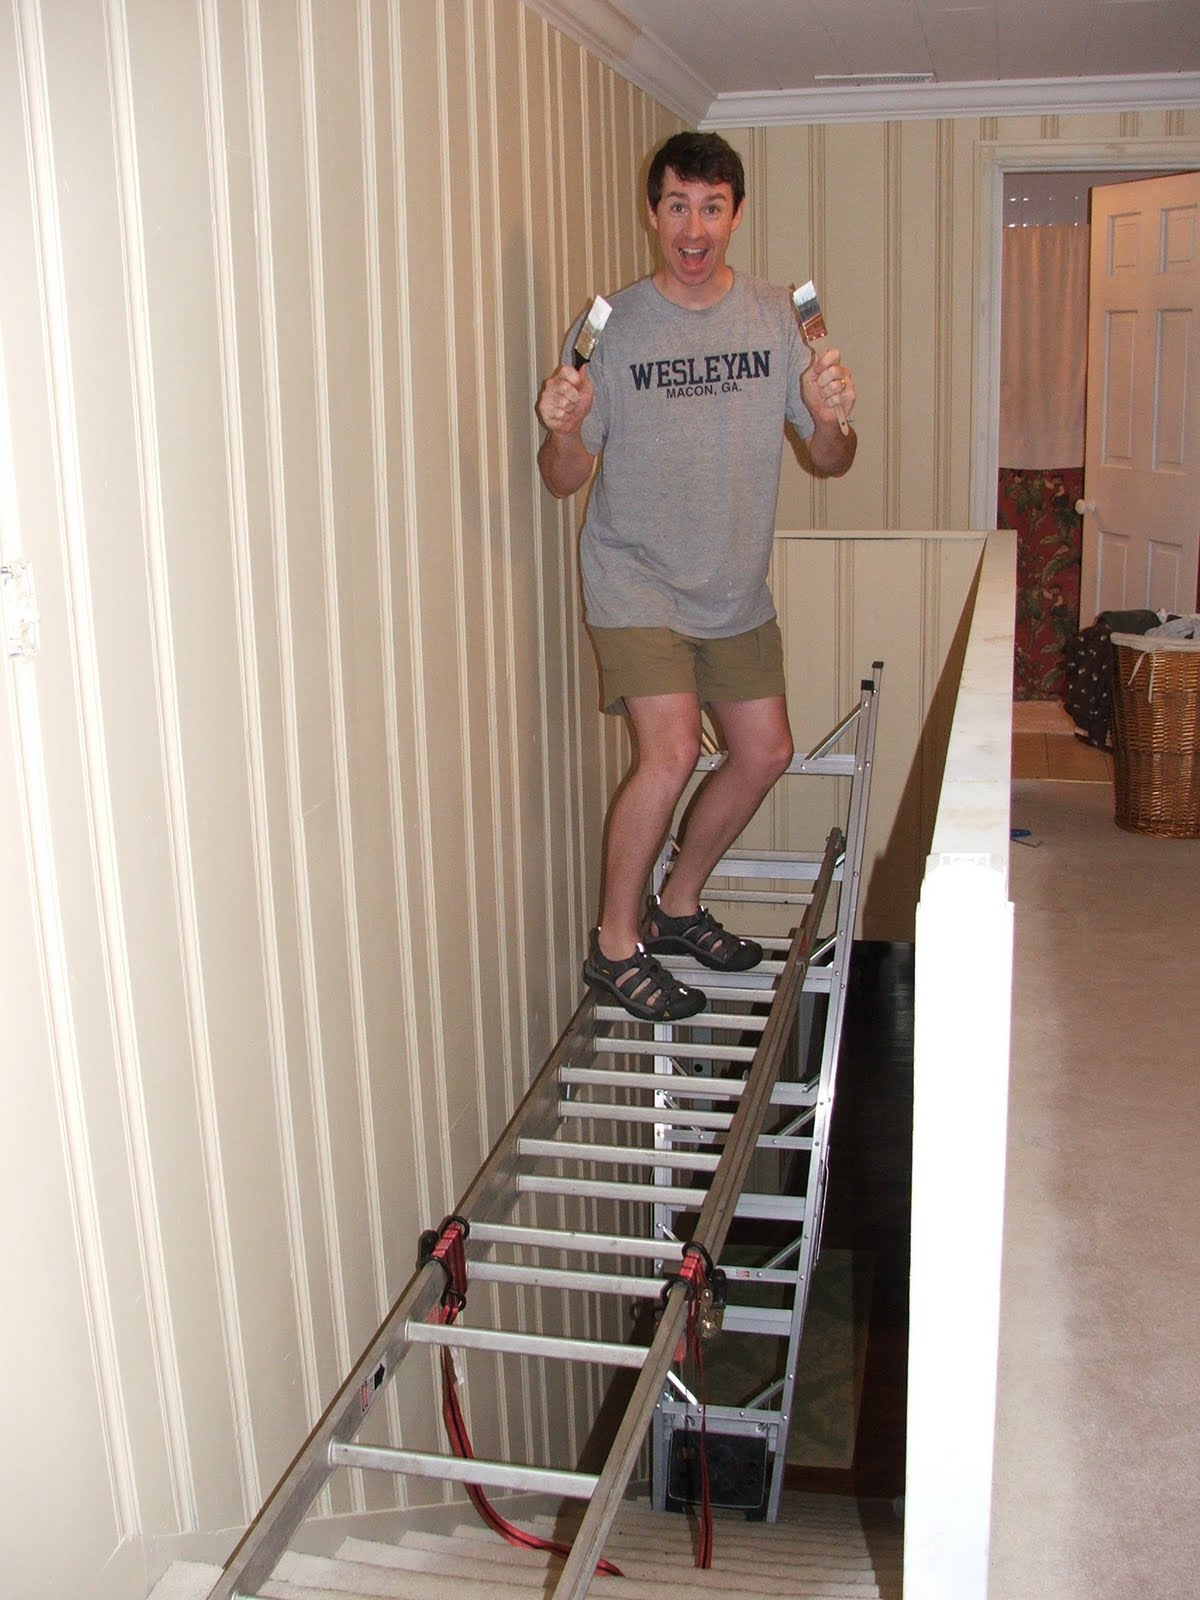 Perry Scaffolding On Stairs : They said i couldn t paint the ceiling above my staircase